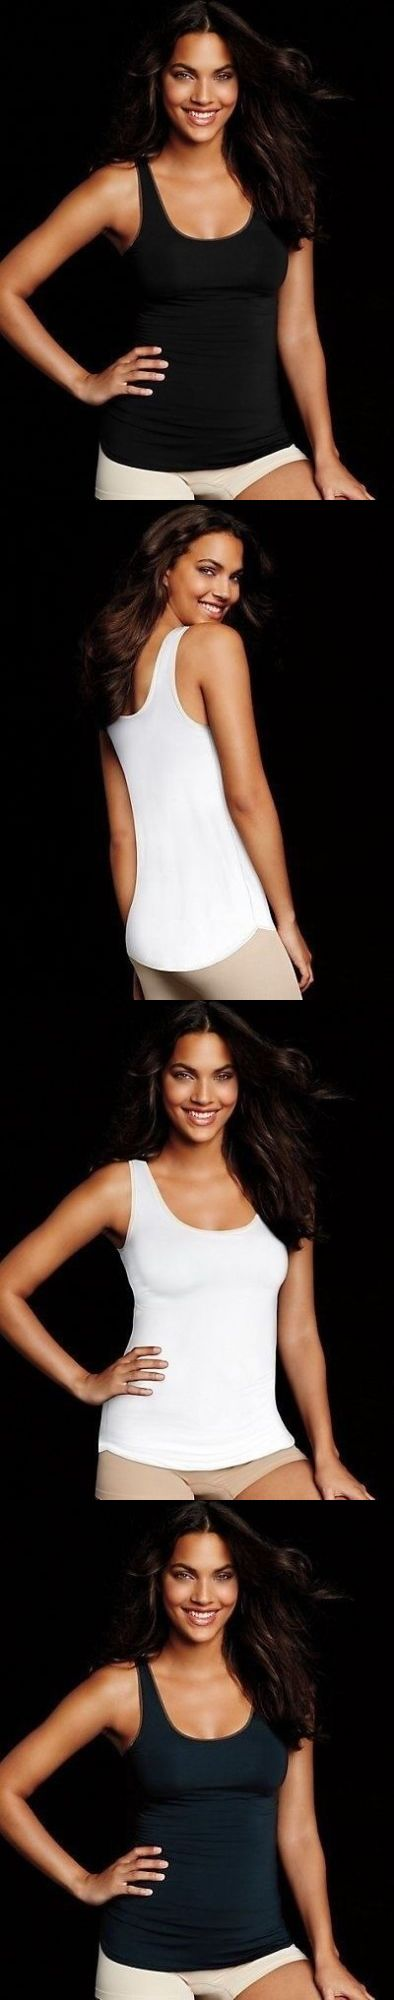 Women Shapewear: Maidenform Undercover Slimming Firm Control Tank Top-Shapewear- 3 Color Choices BUY IT NOW ONLY: $31.58